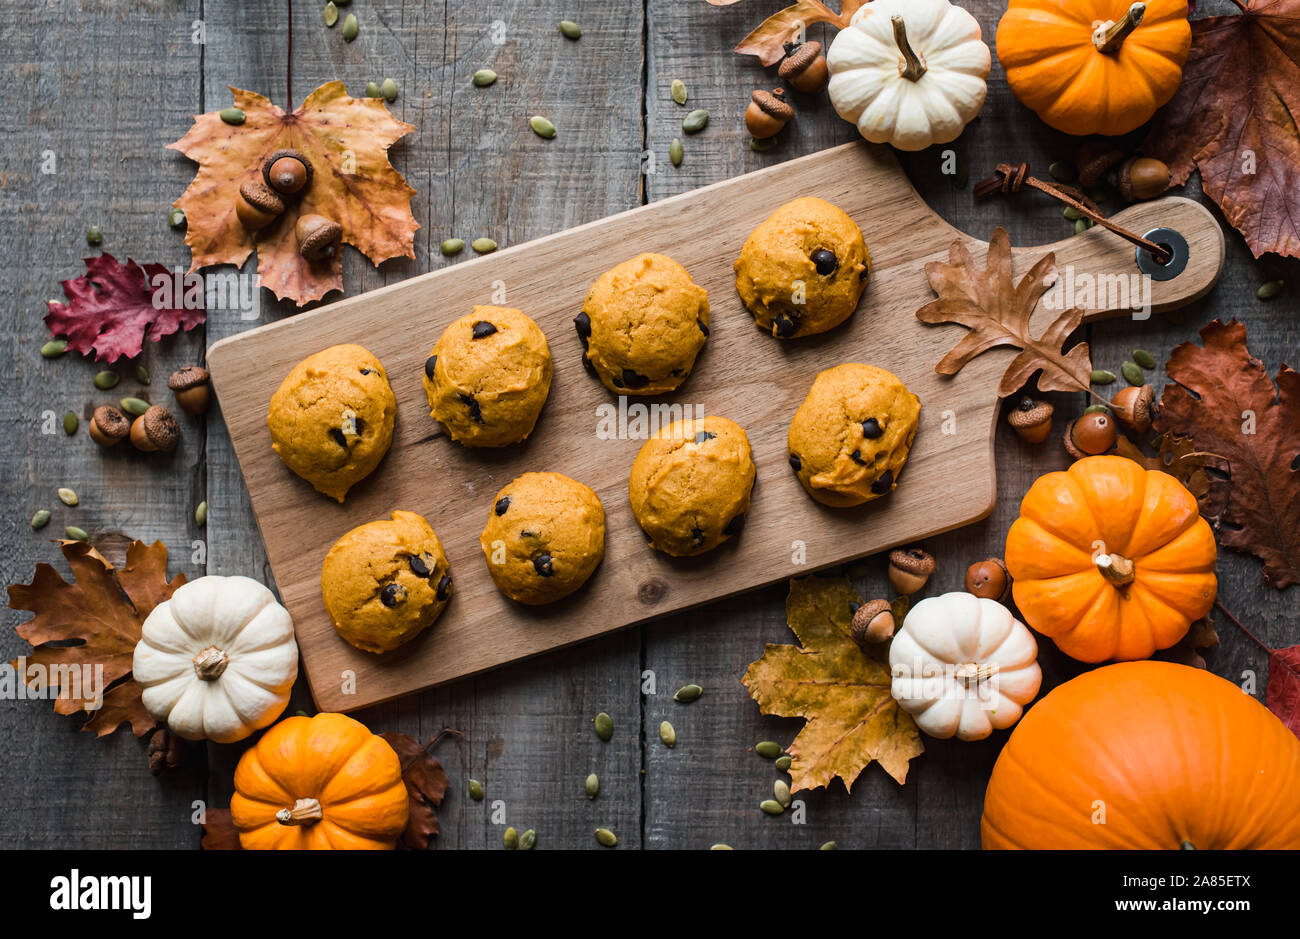 Overhead view of pumpkin chocolate chip cookies on wooden table. Stock Photo